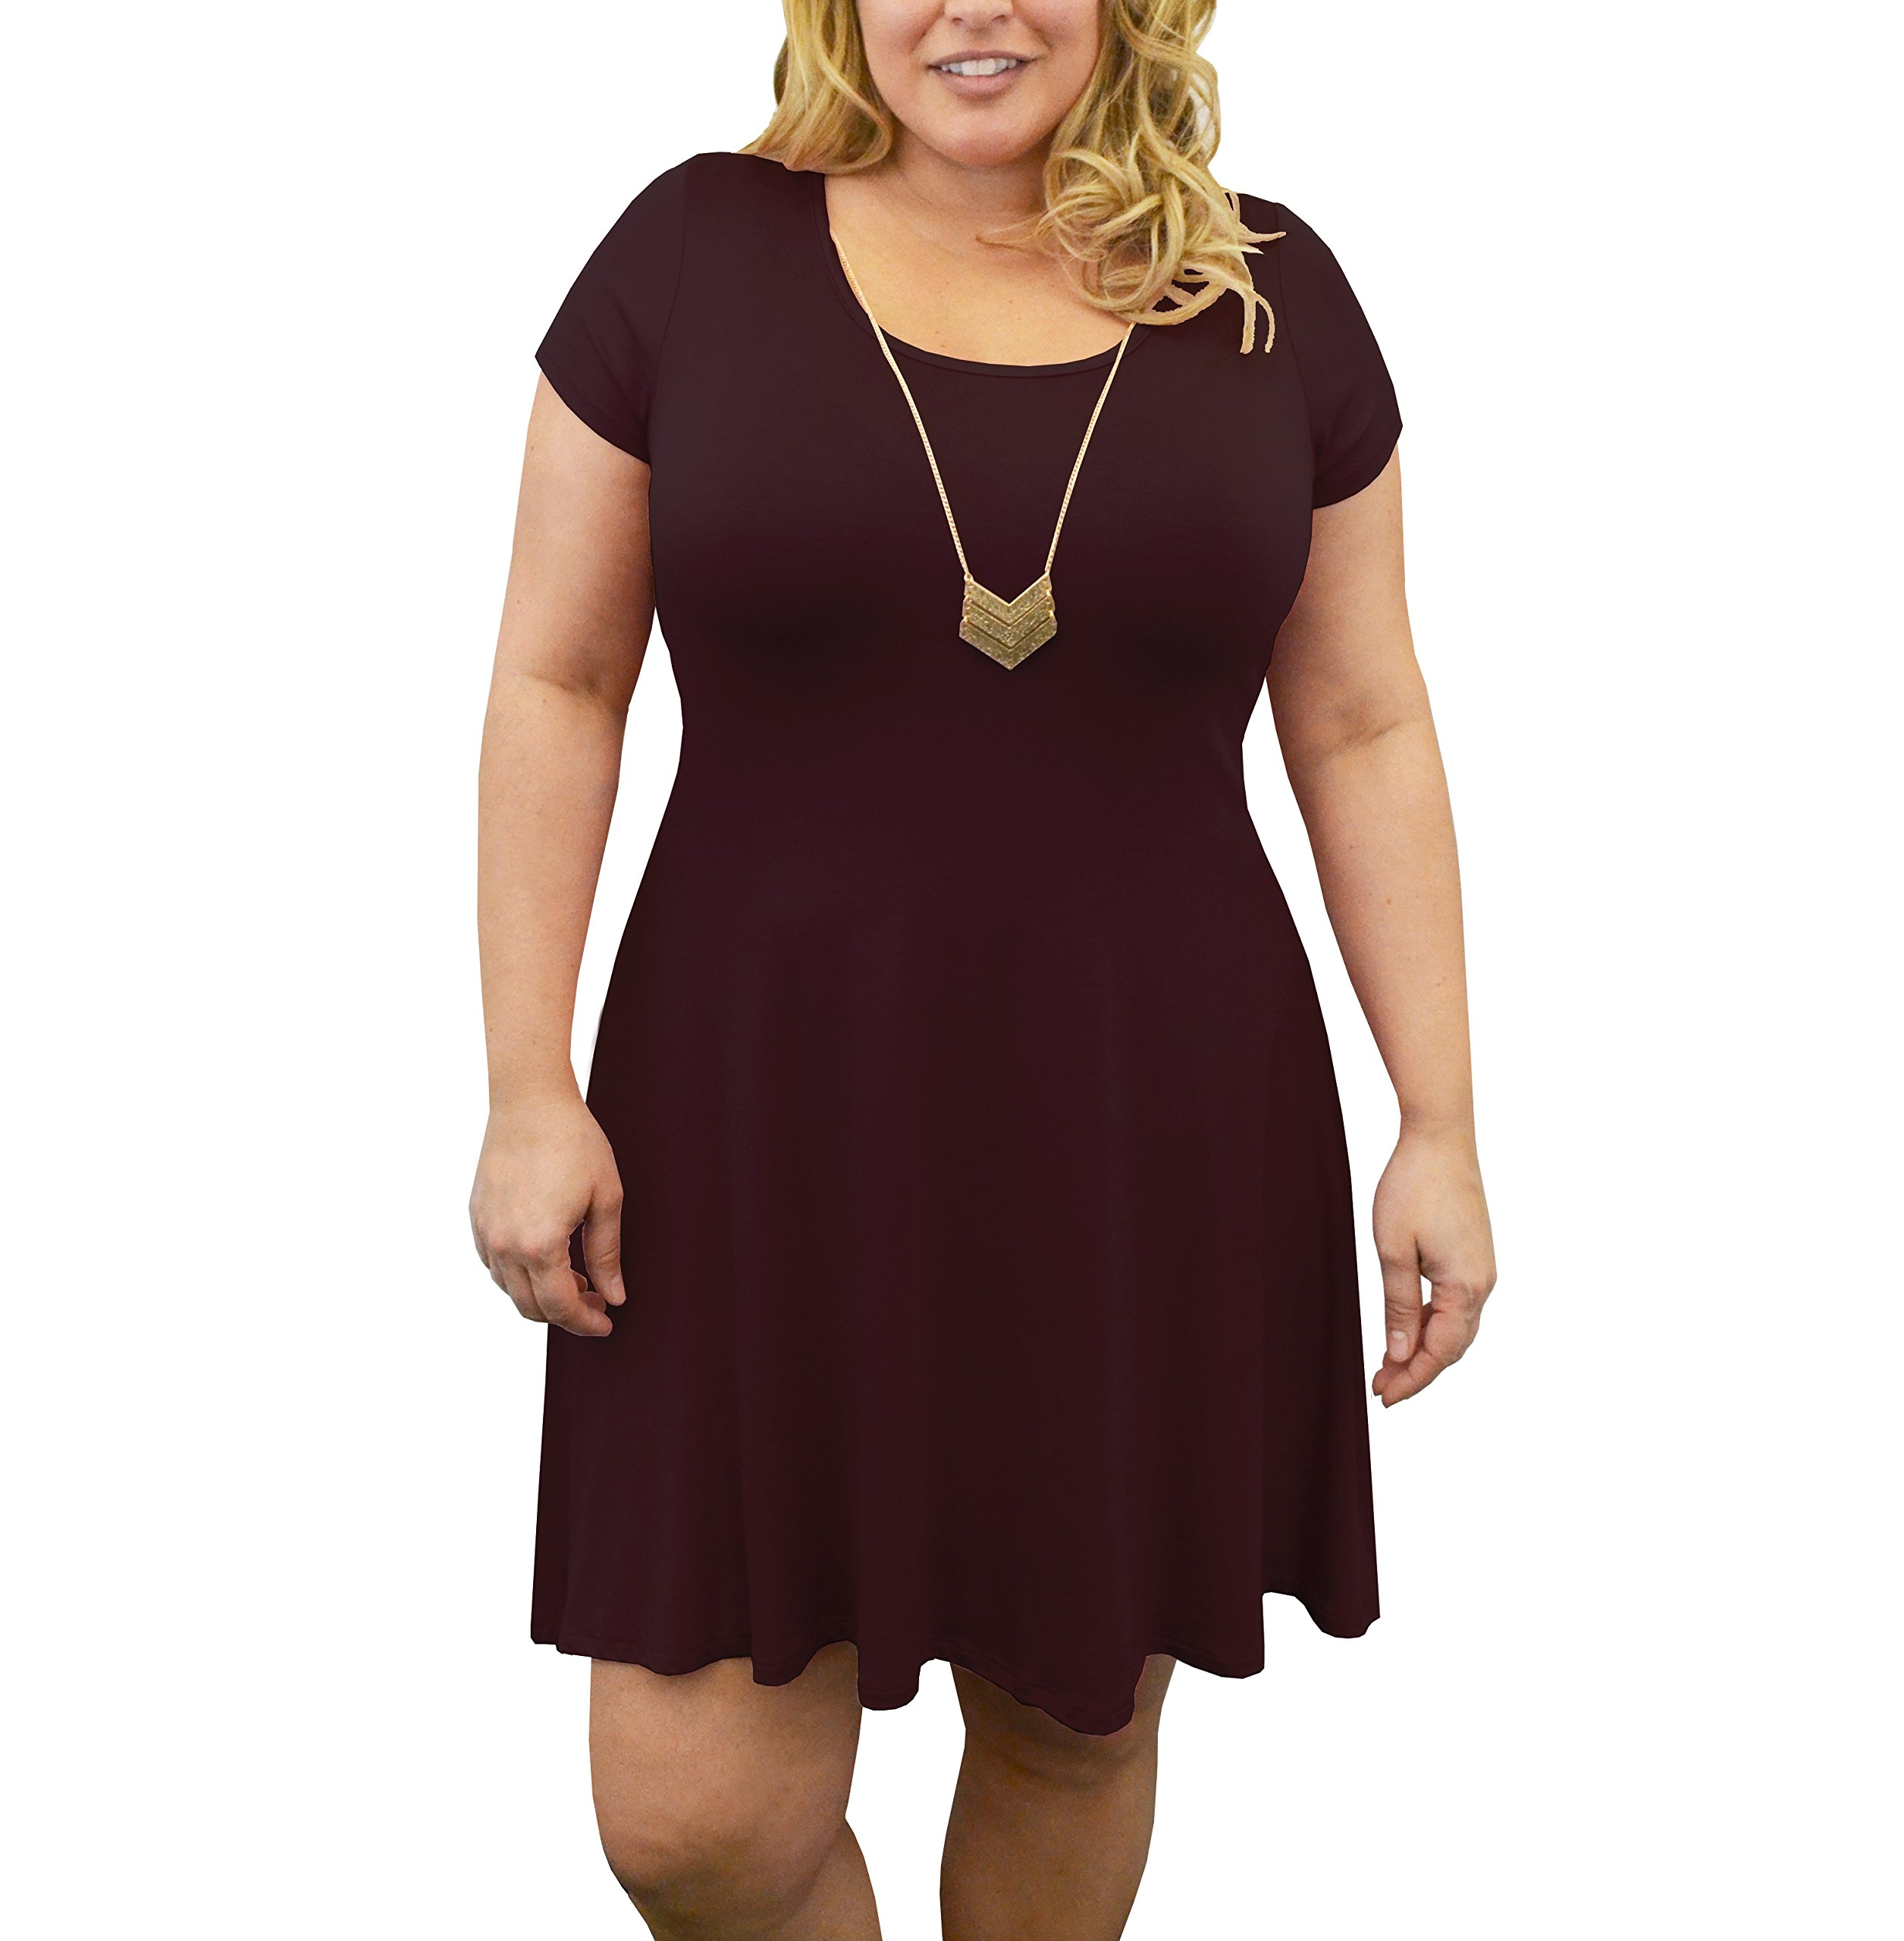 Urban Rose Womens Dress with Necklace – Plus-Size, Short Sleeve, Trapeze Style